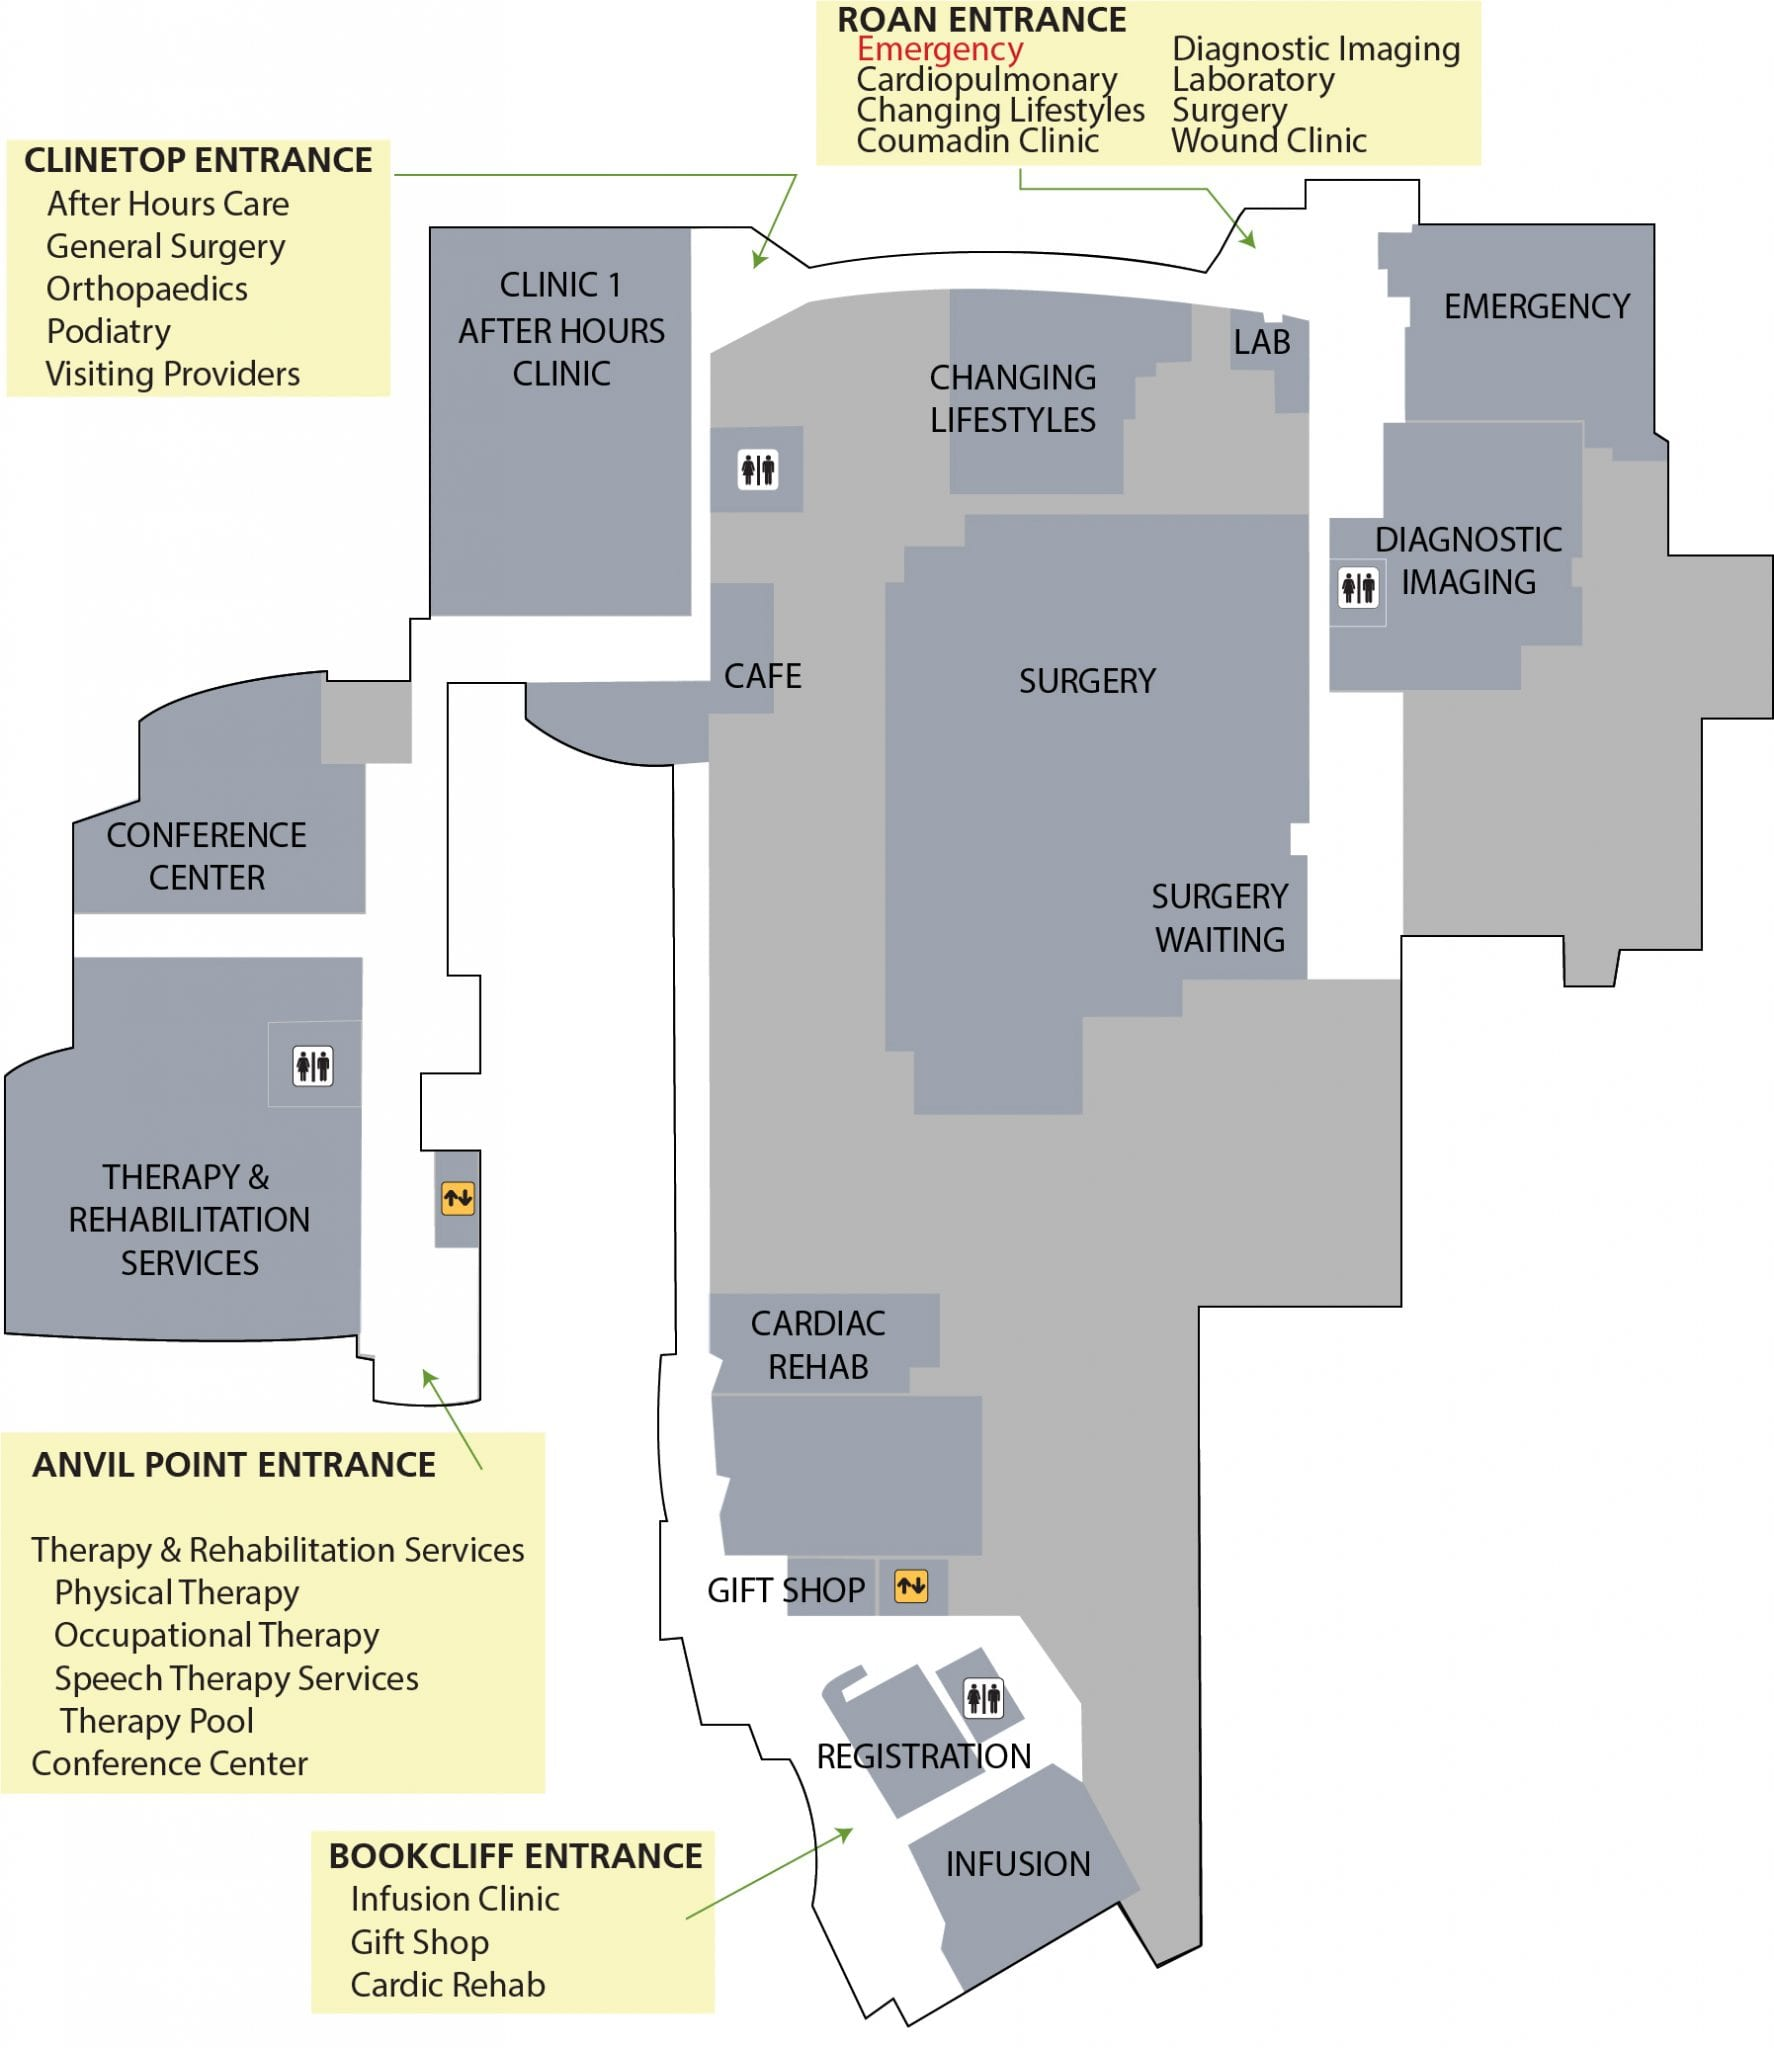 First Floor services